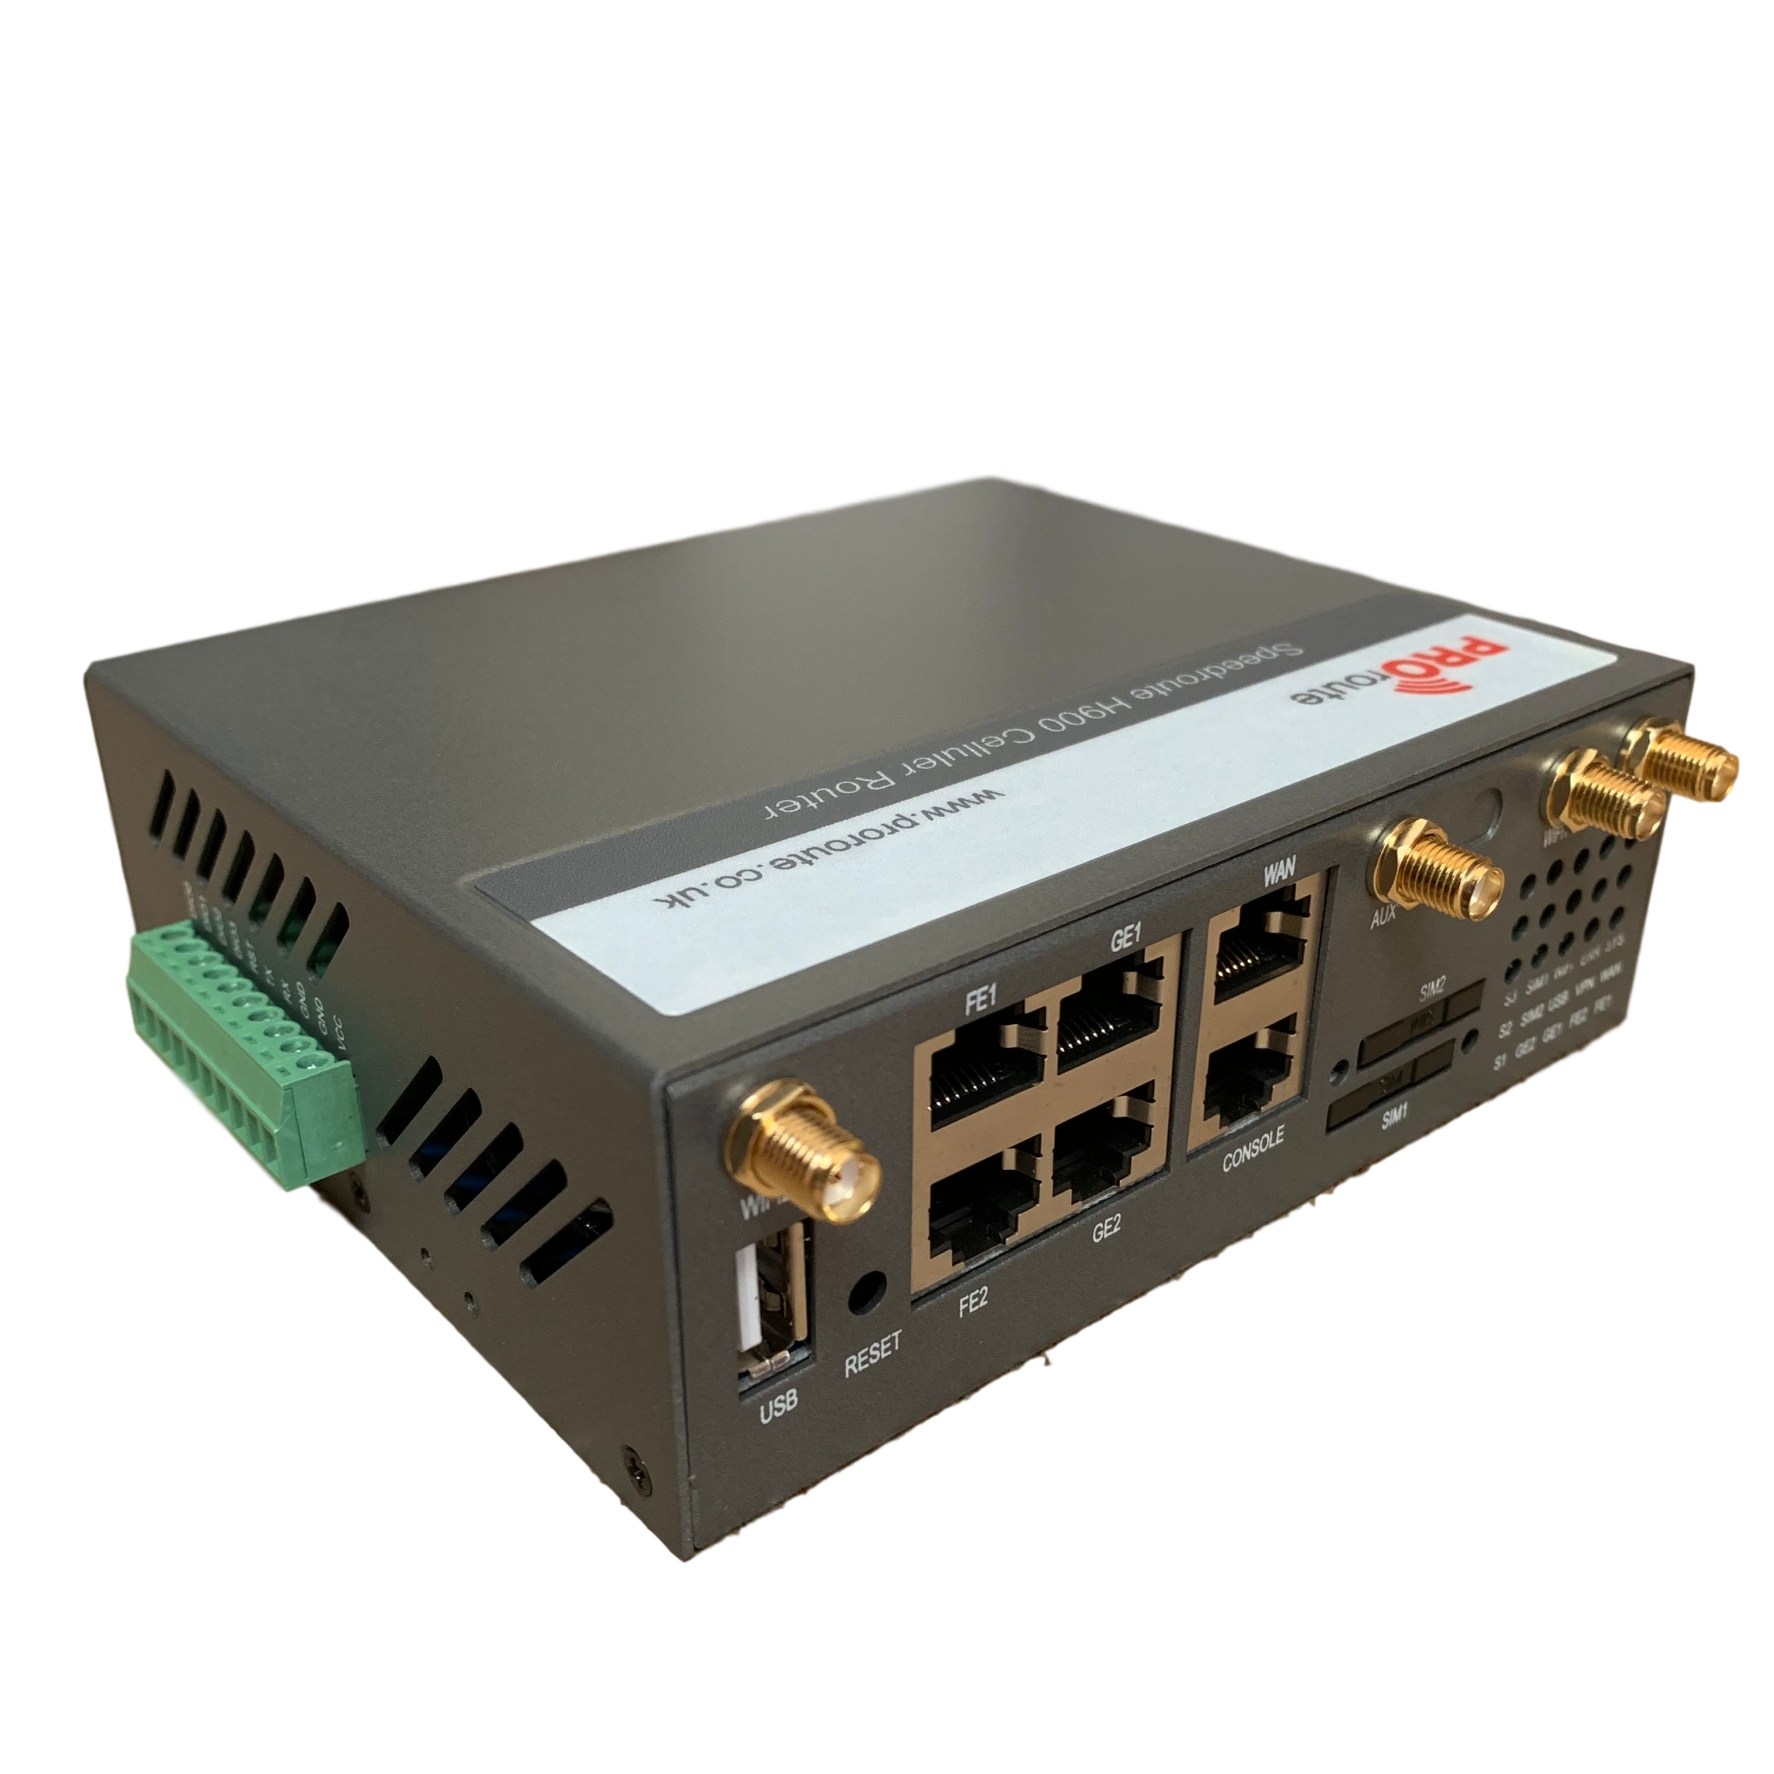 H900 CAT6 4G Router with dual band WiFi